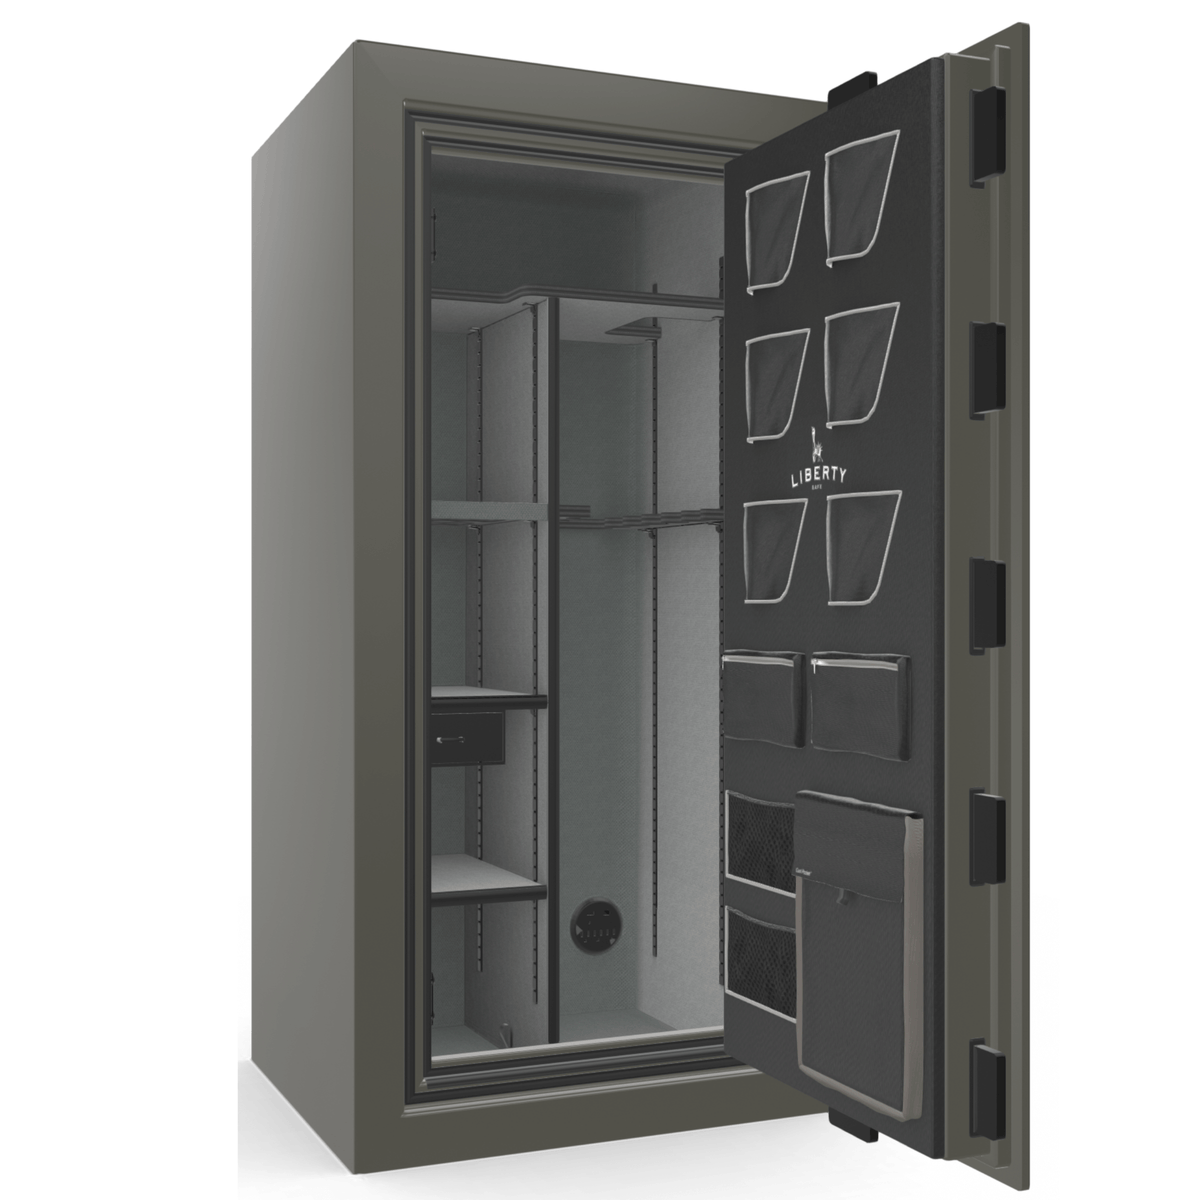 "Classic Plus | 25 | Level 7 Security | 110 Minute Fire Protection | Gray 2-Tone | Black Electronic Lock | 60.5""(H) x 30""(W) x 29""(D)"